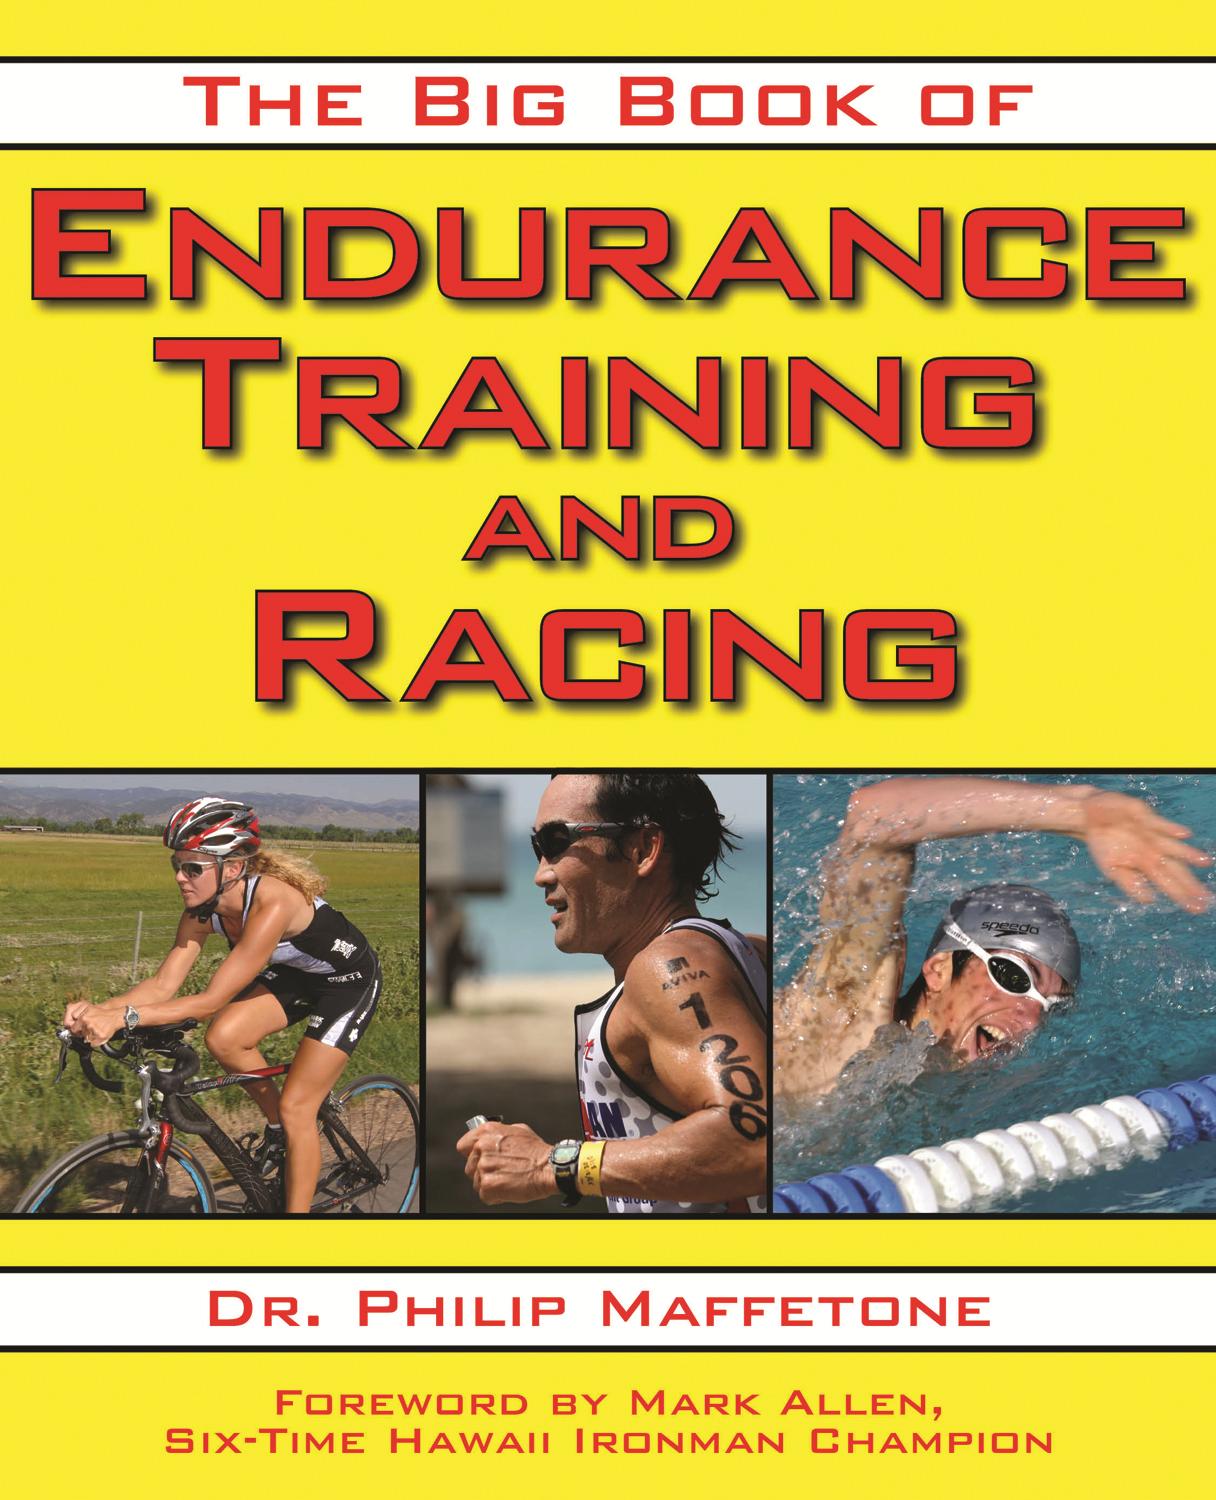 The Big Book of Endurance Training and Racing By: Dr. Philip Maffetone, Mark Allen